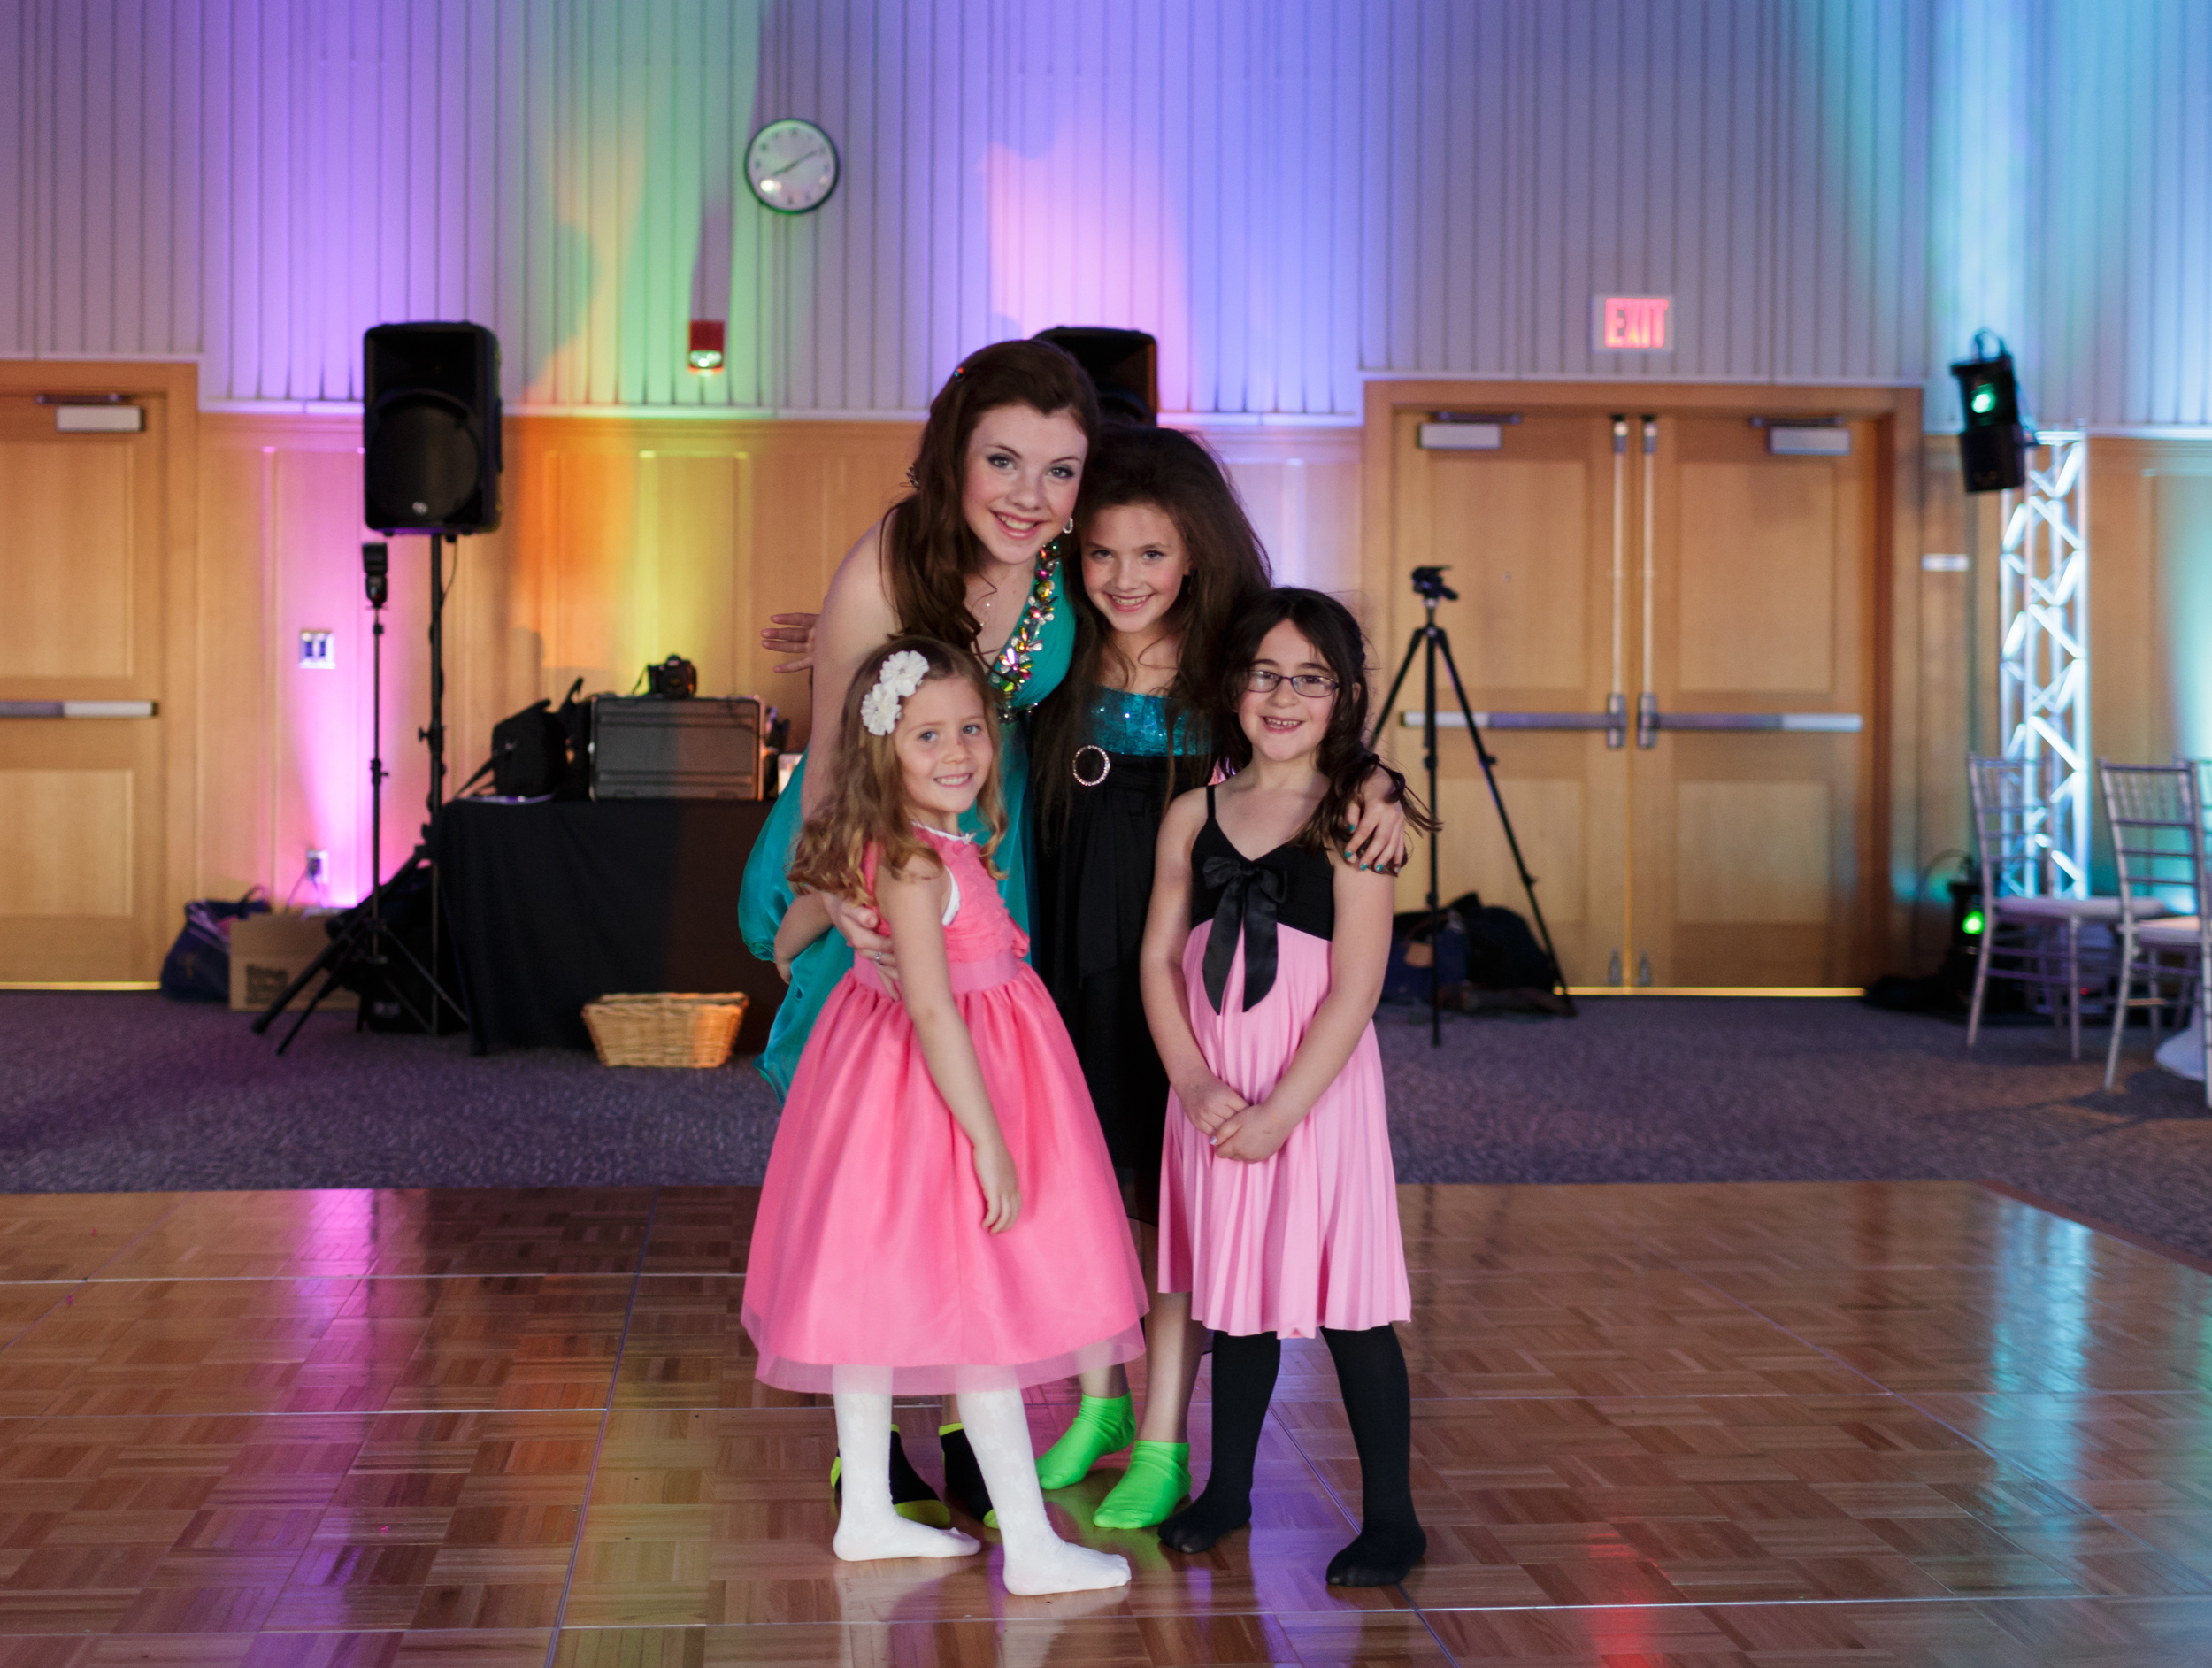 Lily_Ann_Arbor_Bat_Mitzvah_photography_23